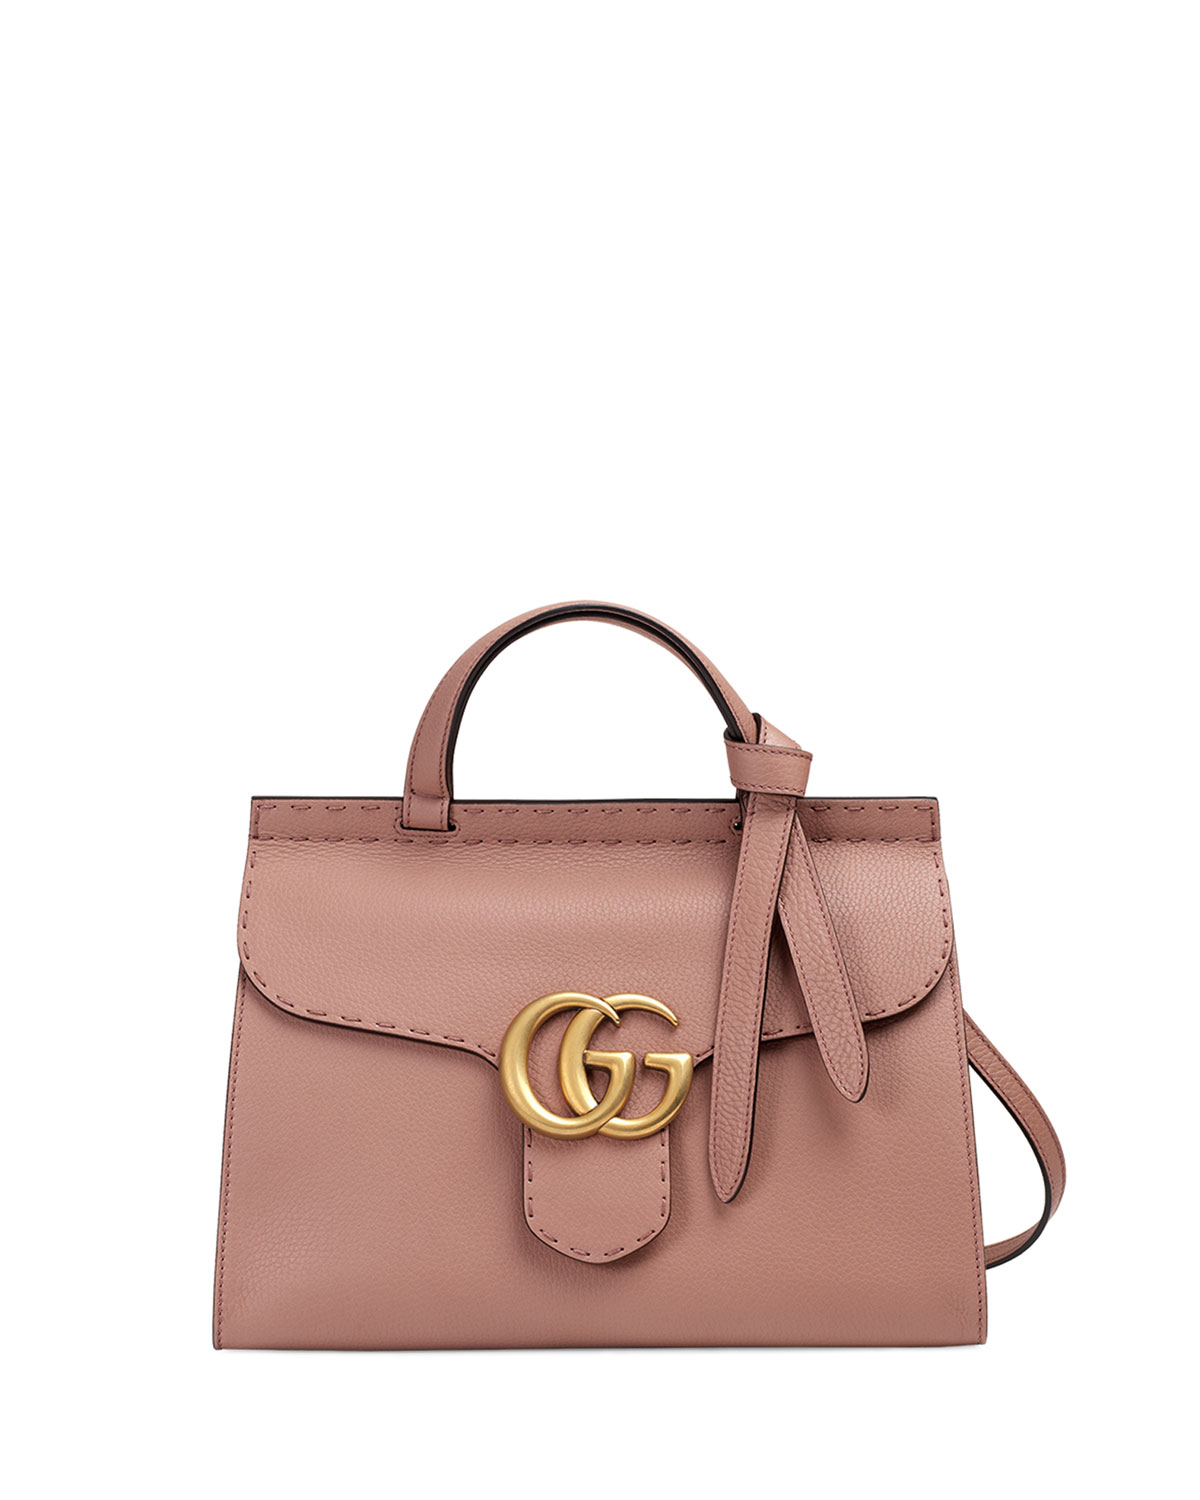 bec17cf36998 Gucci GG Marmont Small Top-Handle Satchel Bag